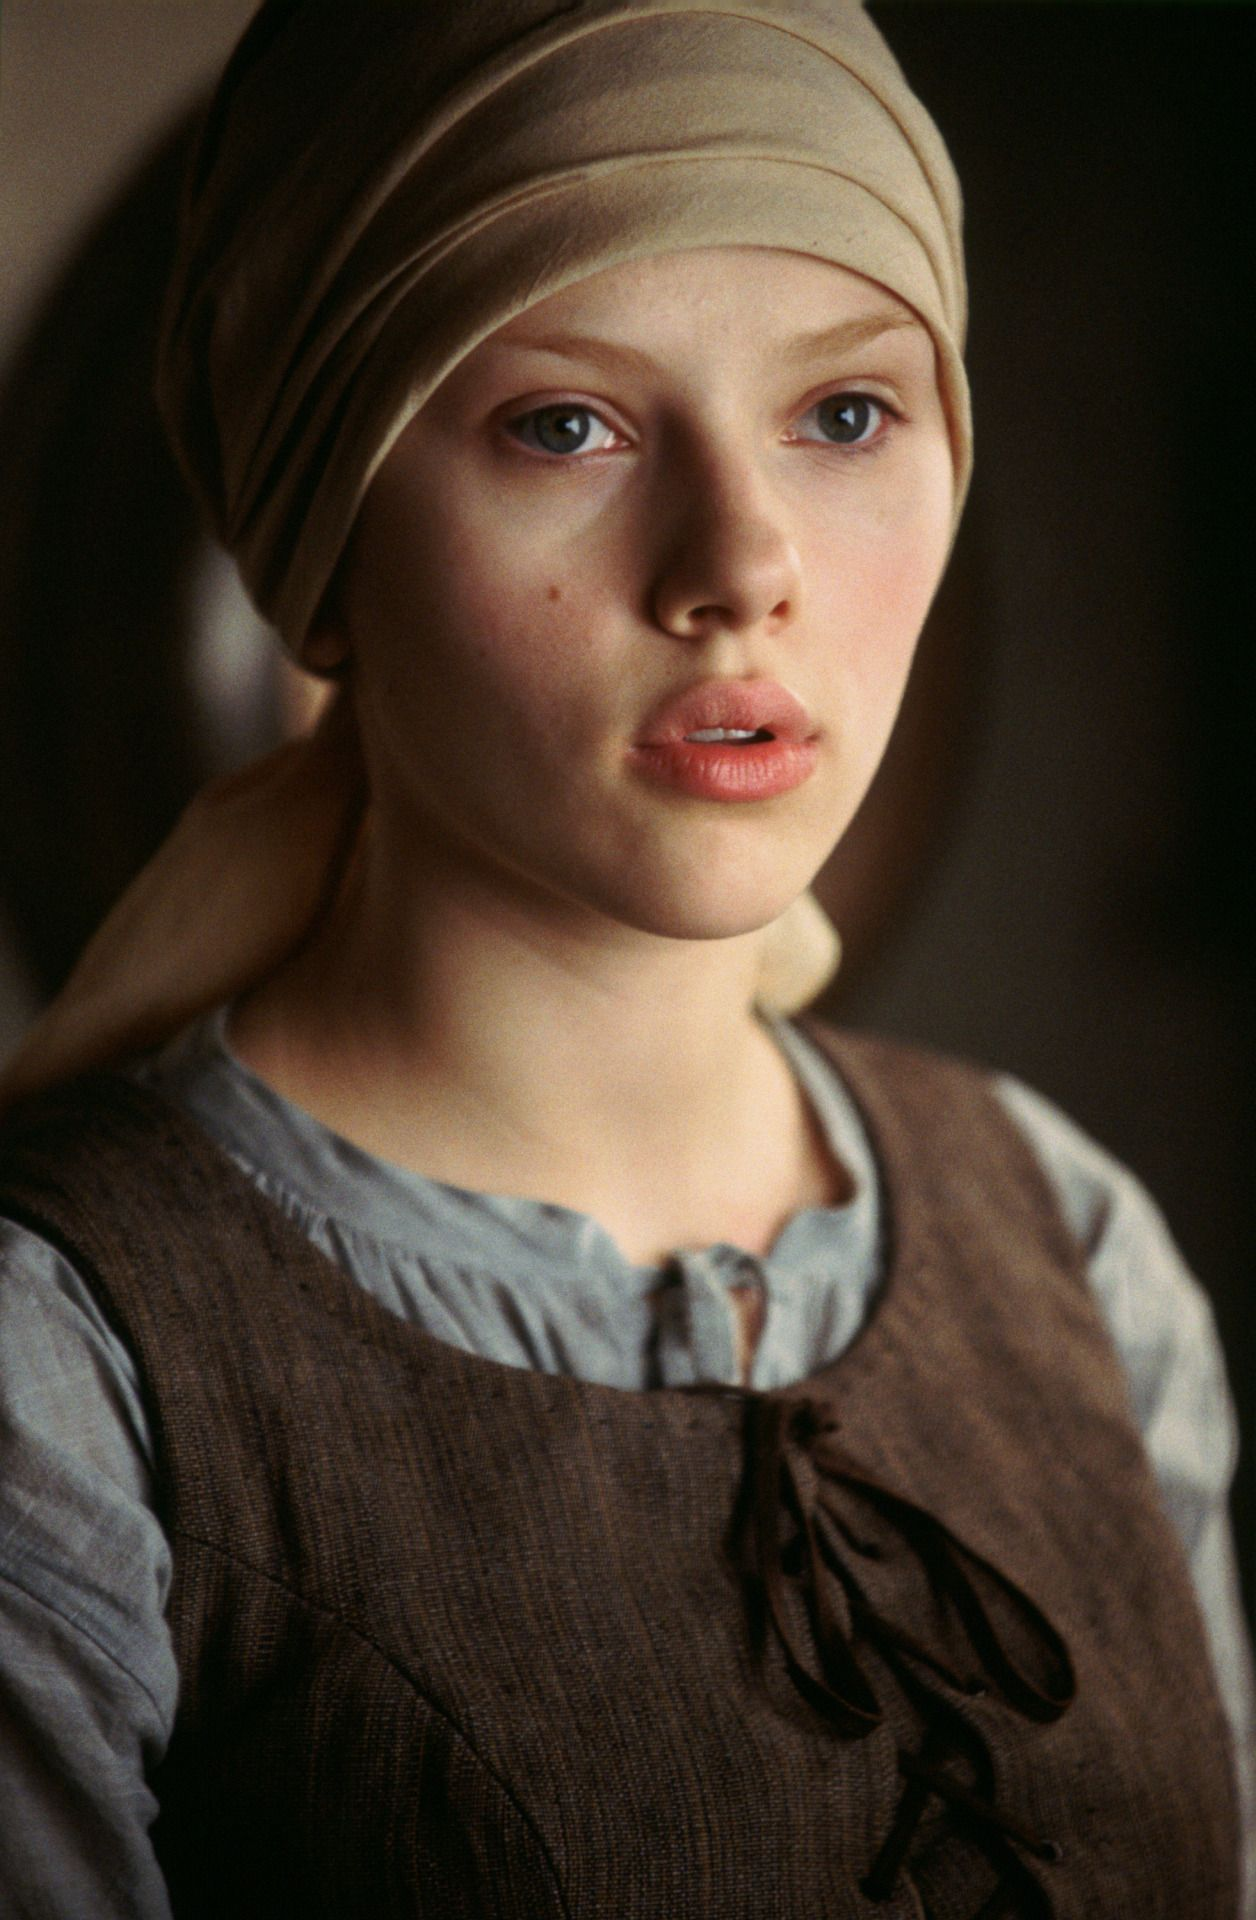 011 Essay Example Girl With Pearl Outstanding A Earring The Movie Film Review Full